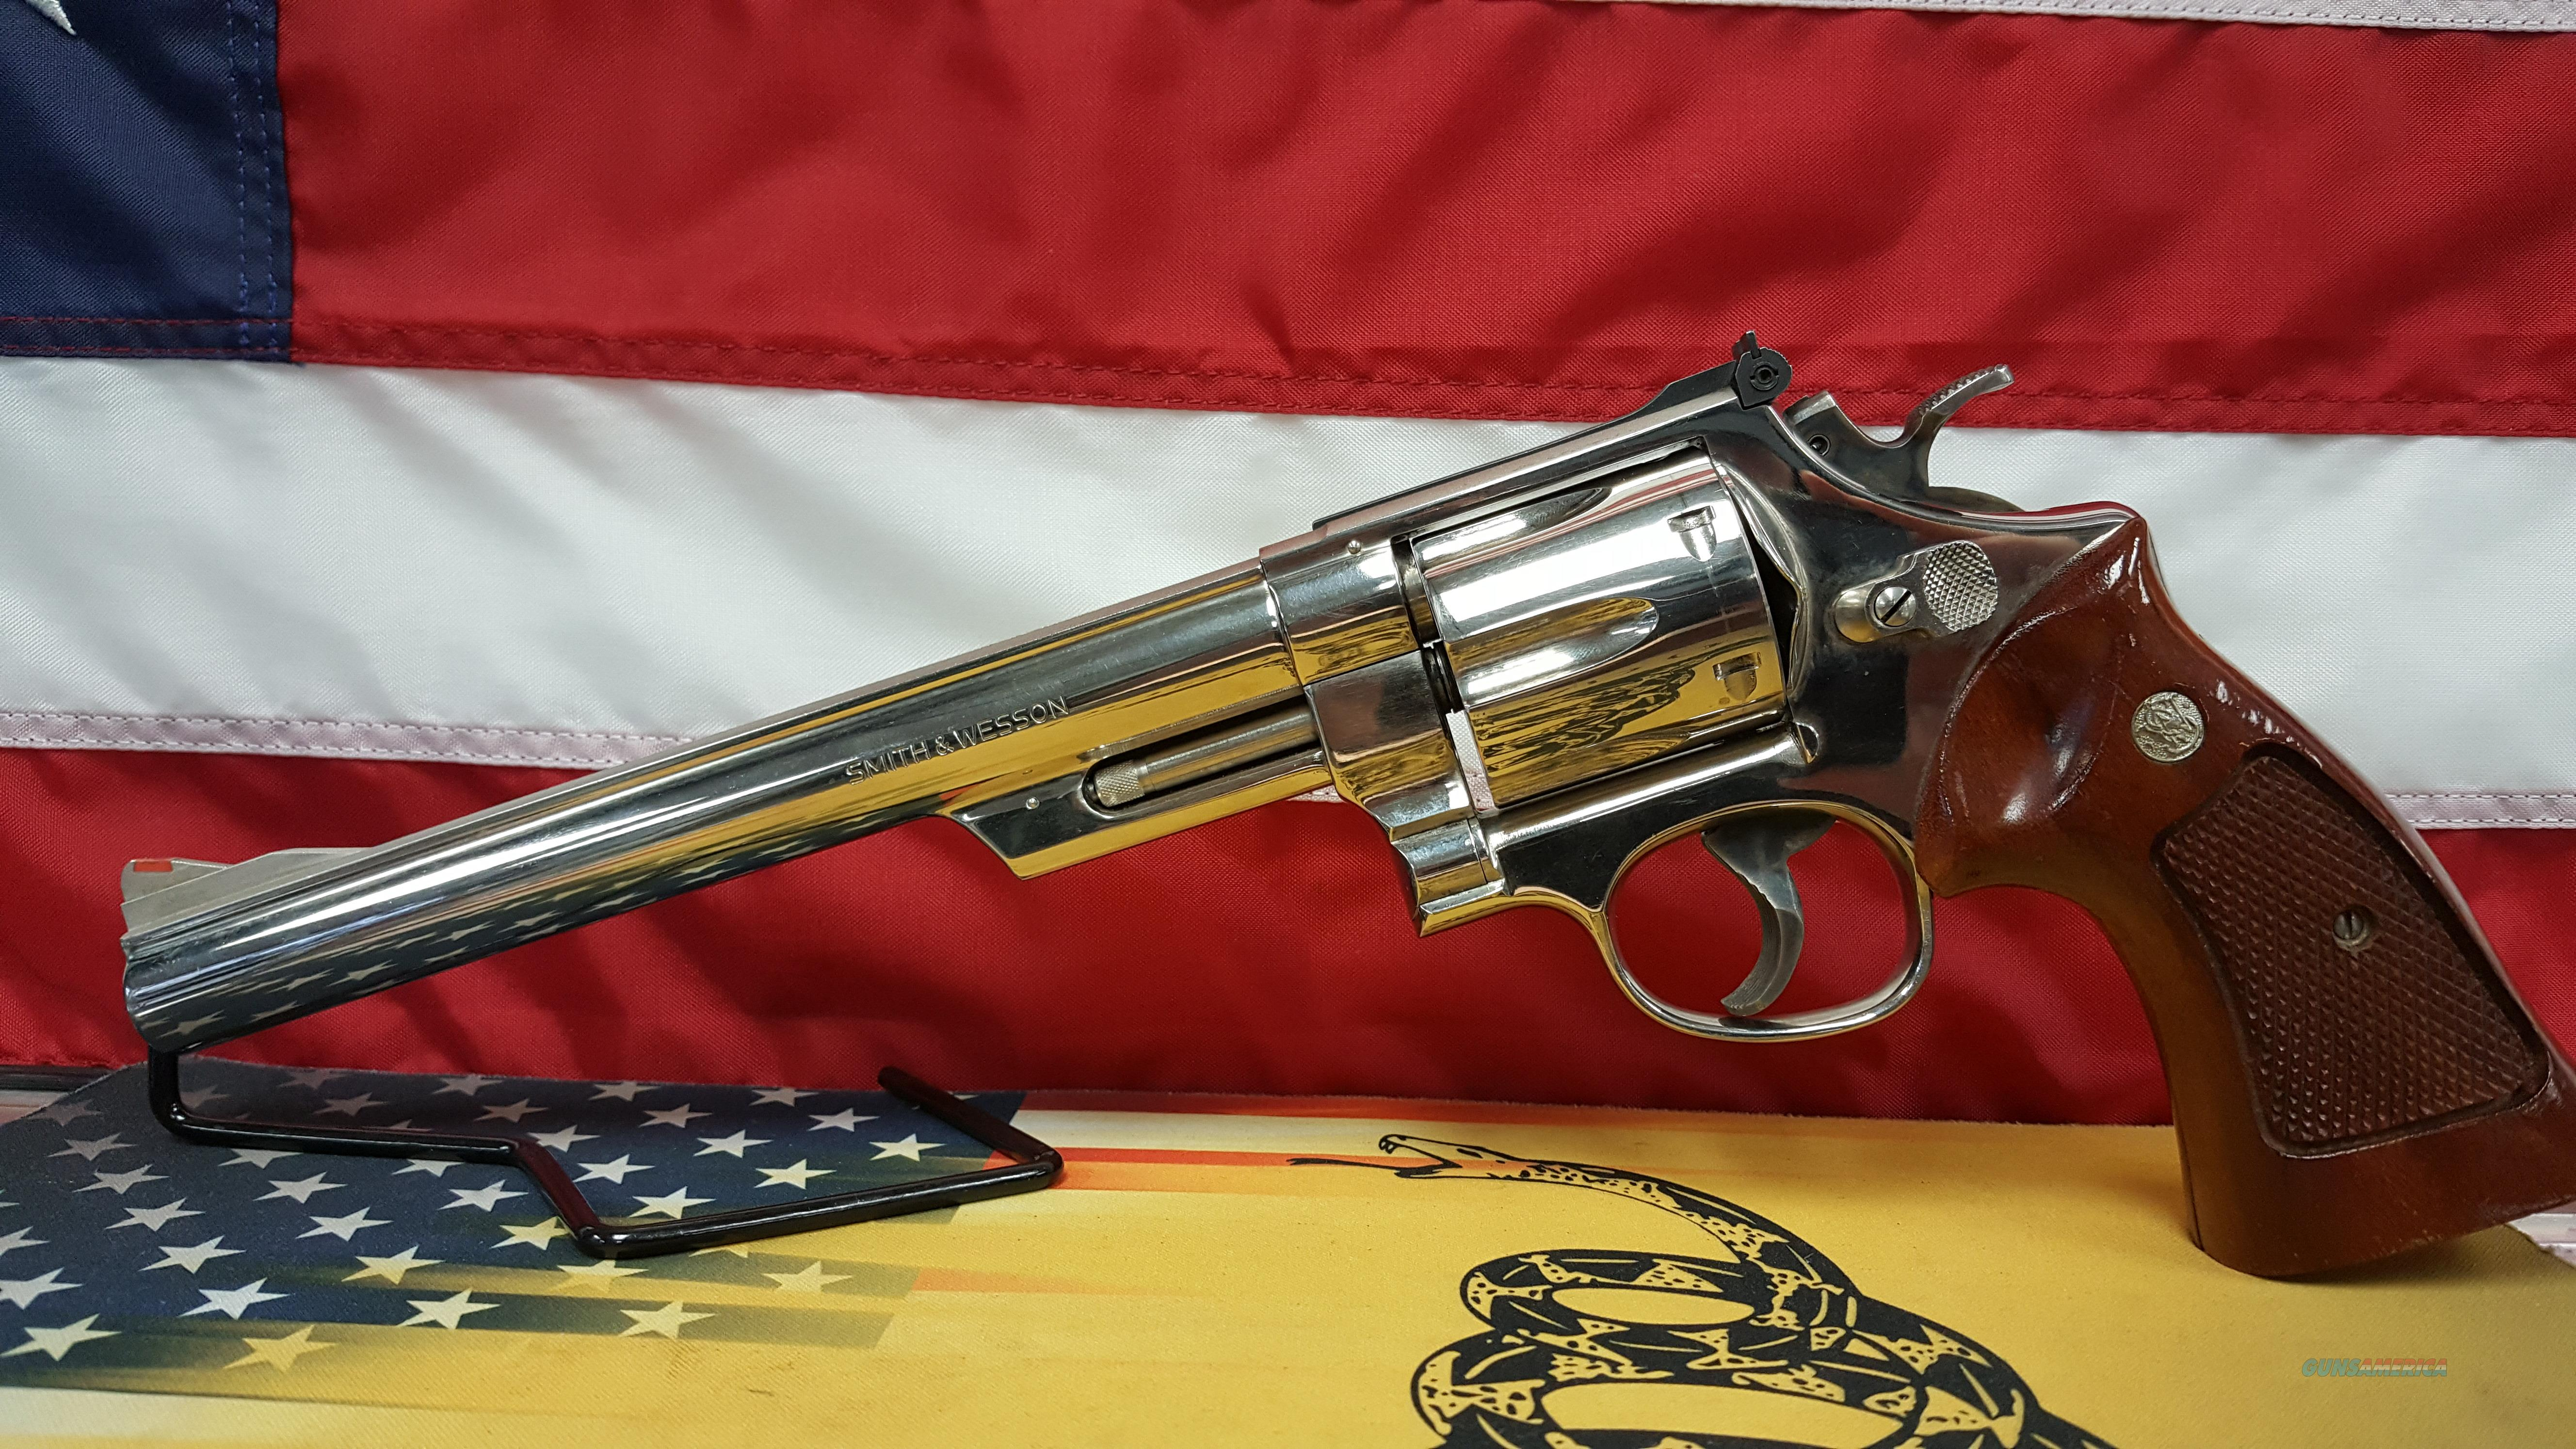 "SMITH AND WESSON MODEL 57 8 3/8"" 41 MAGNUM NICKEL REVOLVER   Guns > Pistols > Smith & Wesson Revolvers > Full Frame Revolver"